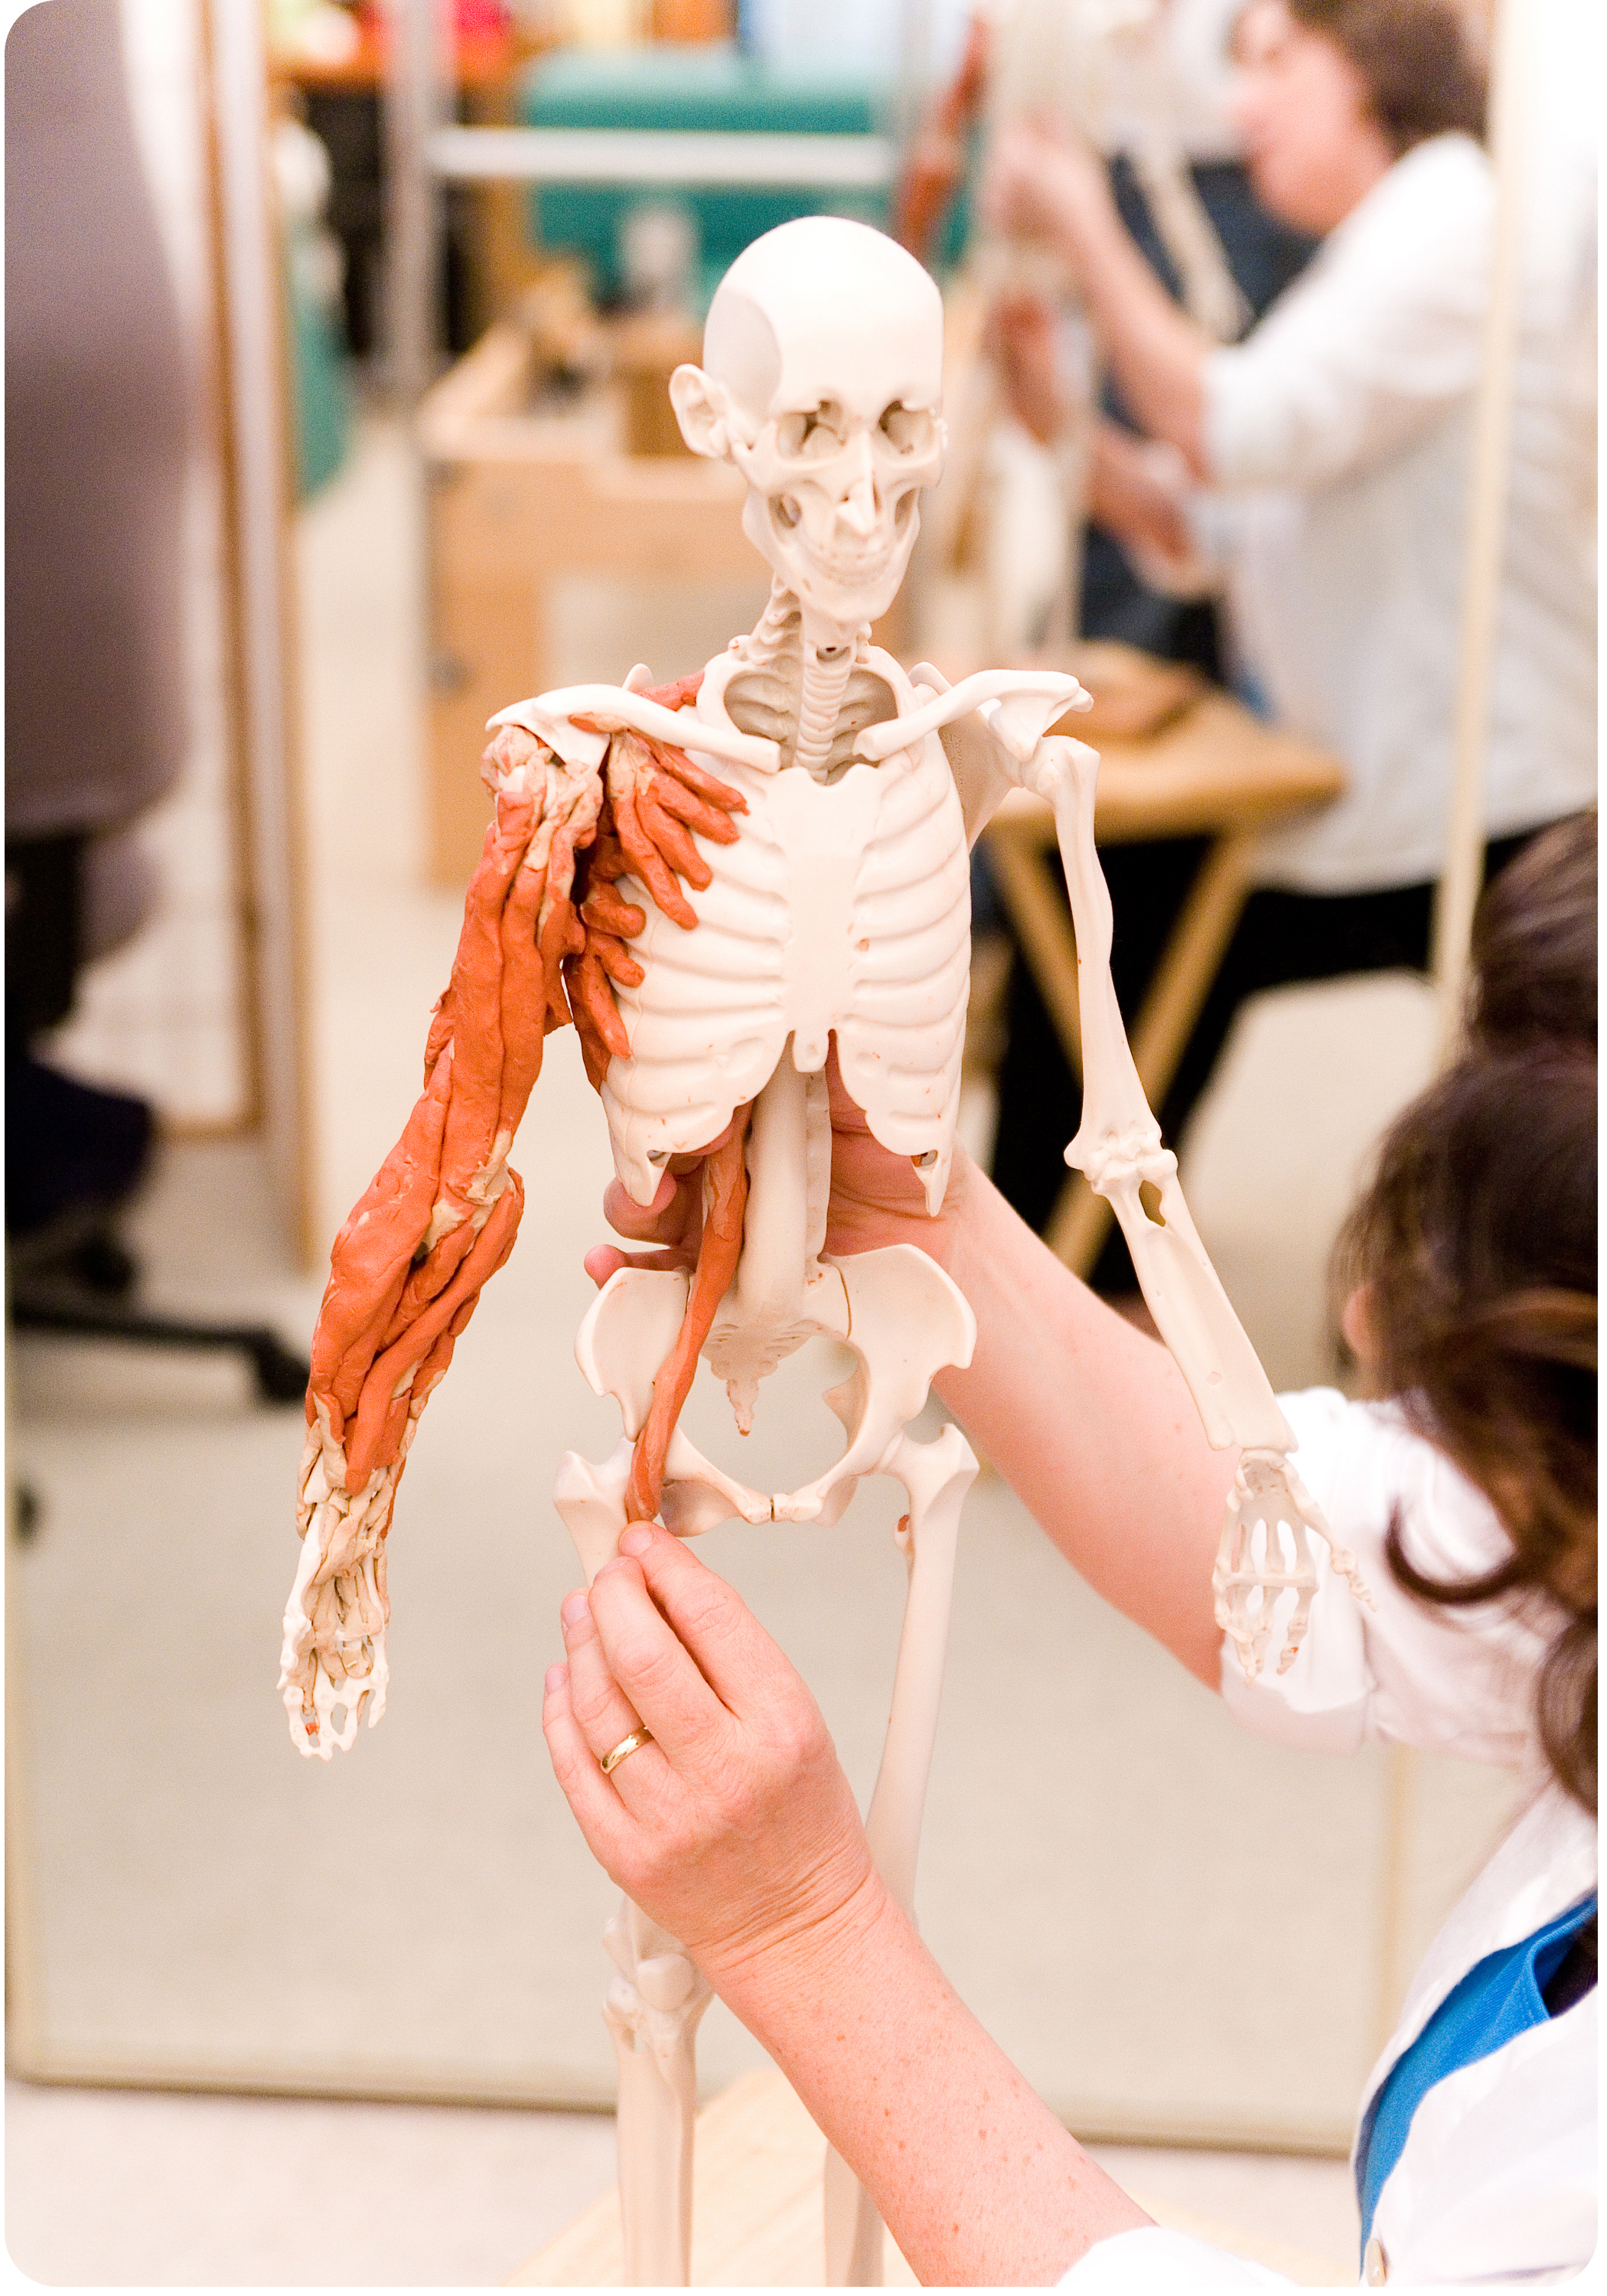 anatomy in clay image